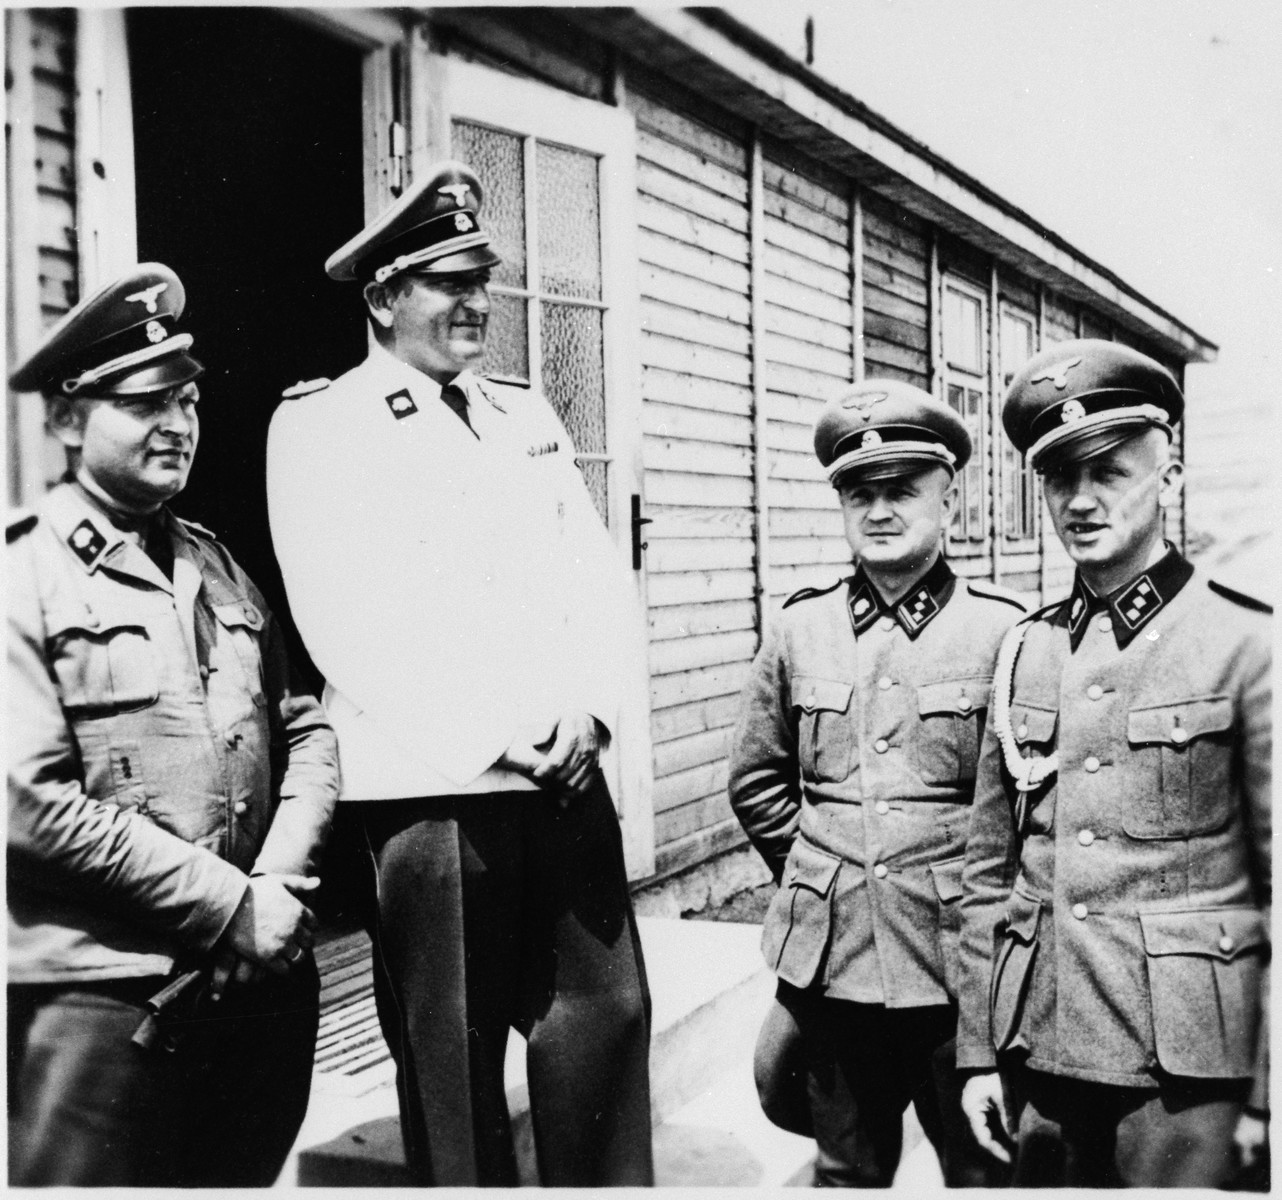 SS-Obersturmbannfuehrer Arthur Roedl (in white), the commandant of Gross-Rosen, in the camp with three members of the SS staff.  His adjutant Kuno Schramm is on the right.